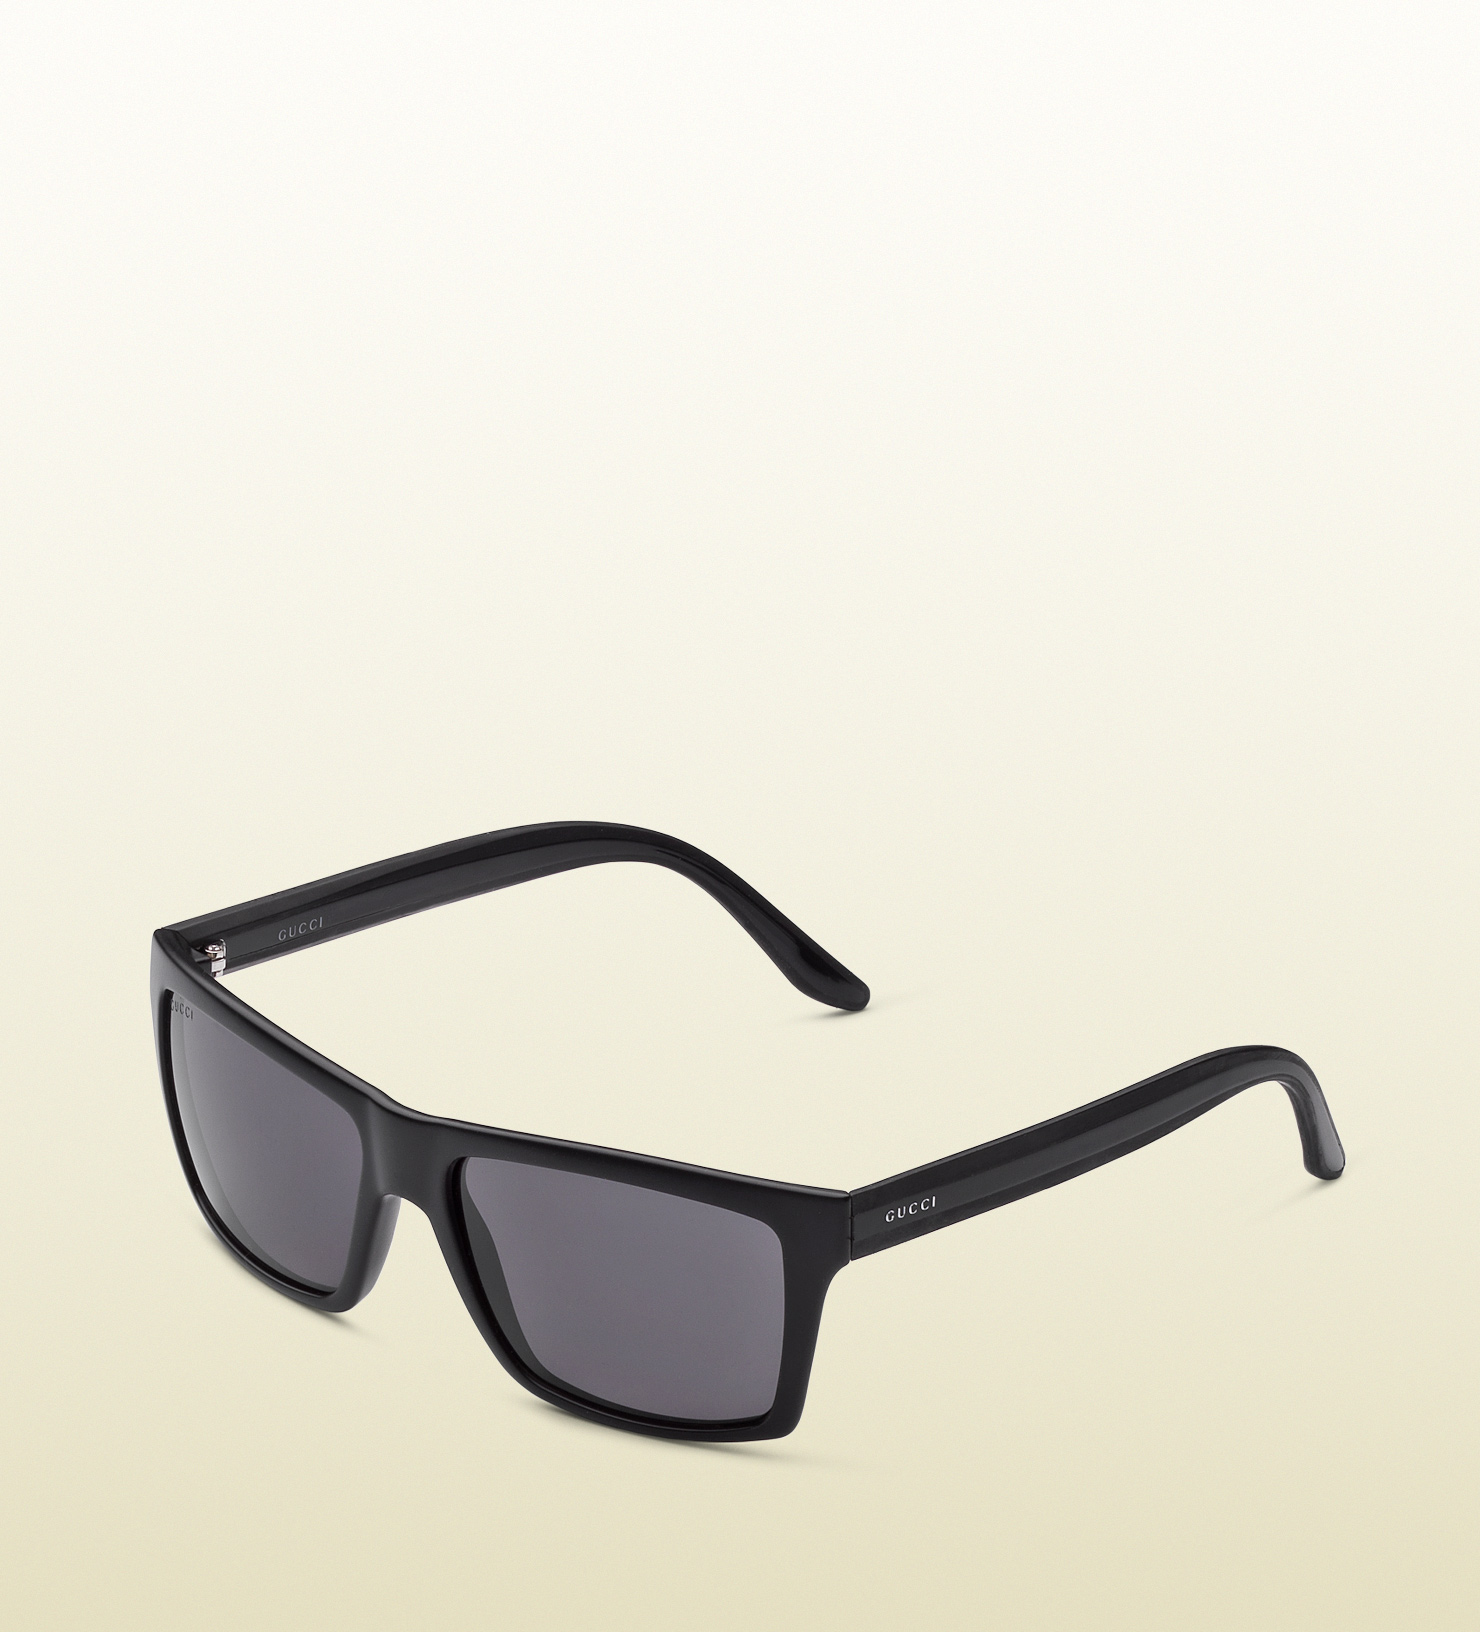 Gucci - medium rectangle frame sunglasses with gucci logo on web rubber temples. 298594J16961065